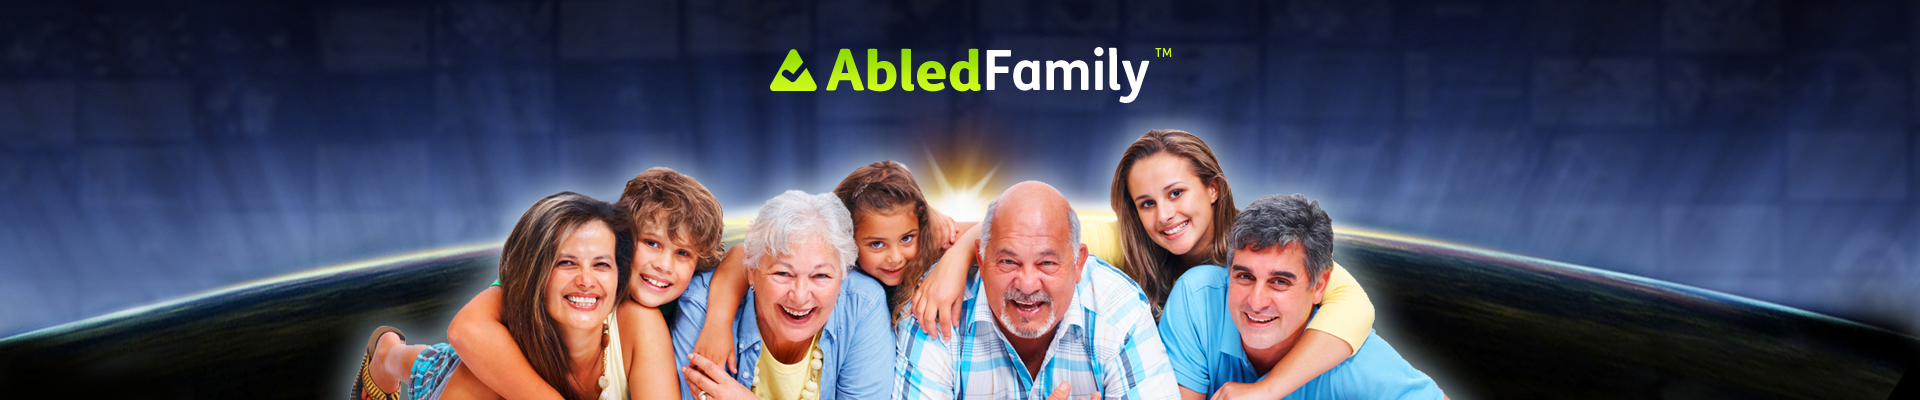 AbledFamily banner shows family members lying on their bellies in the studio facing the camera propped up on their elbows against a backdrop of a a sunrise seen over the curve of the earth and the AbledFamily logo above it.